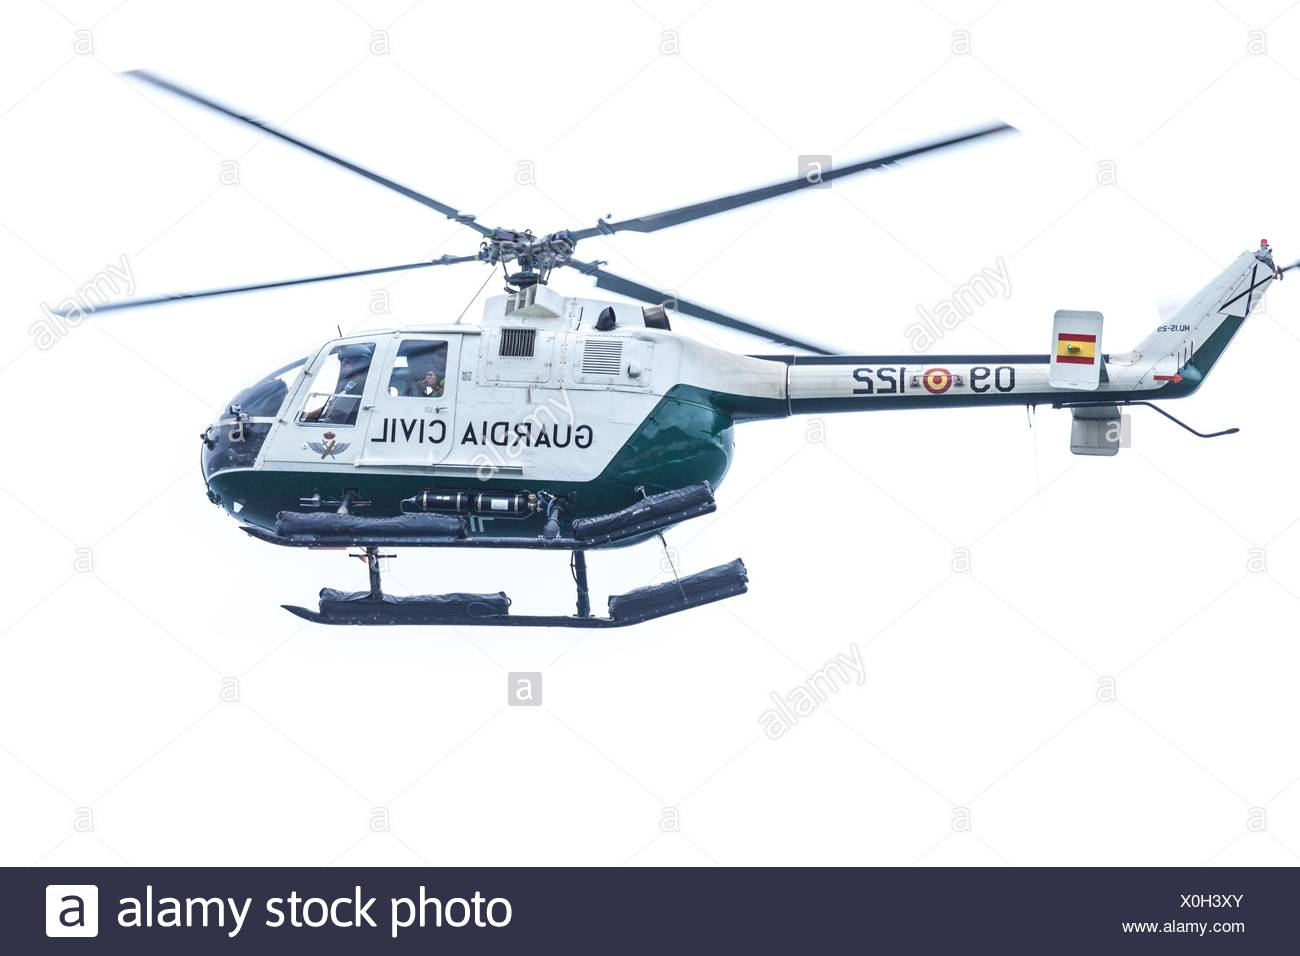 helicopter of the spanish Civil Guard - Stock Image